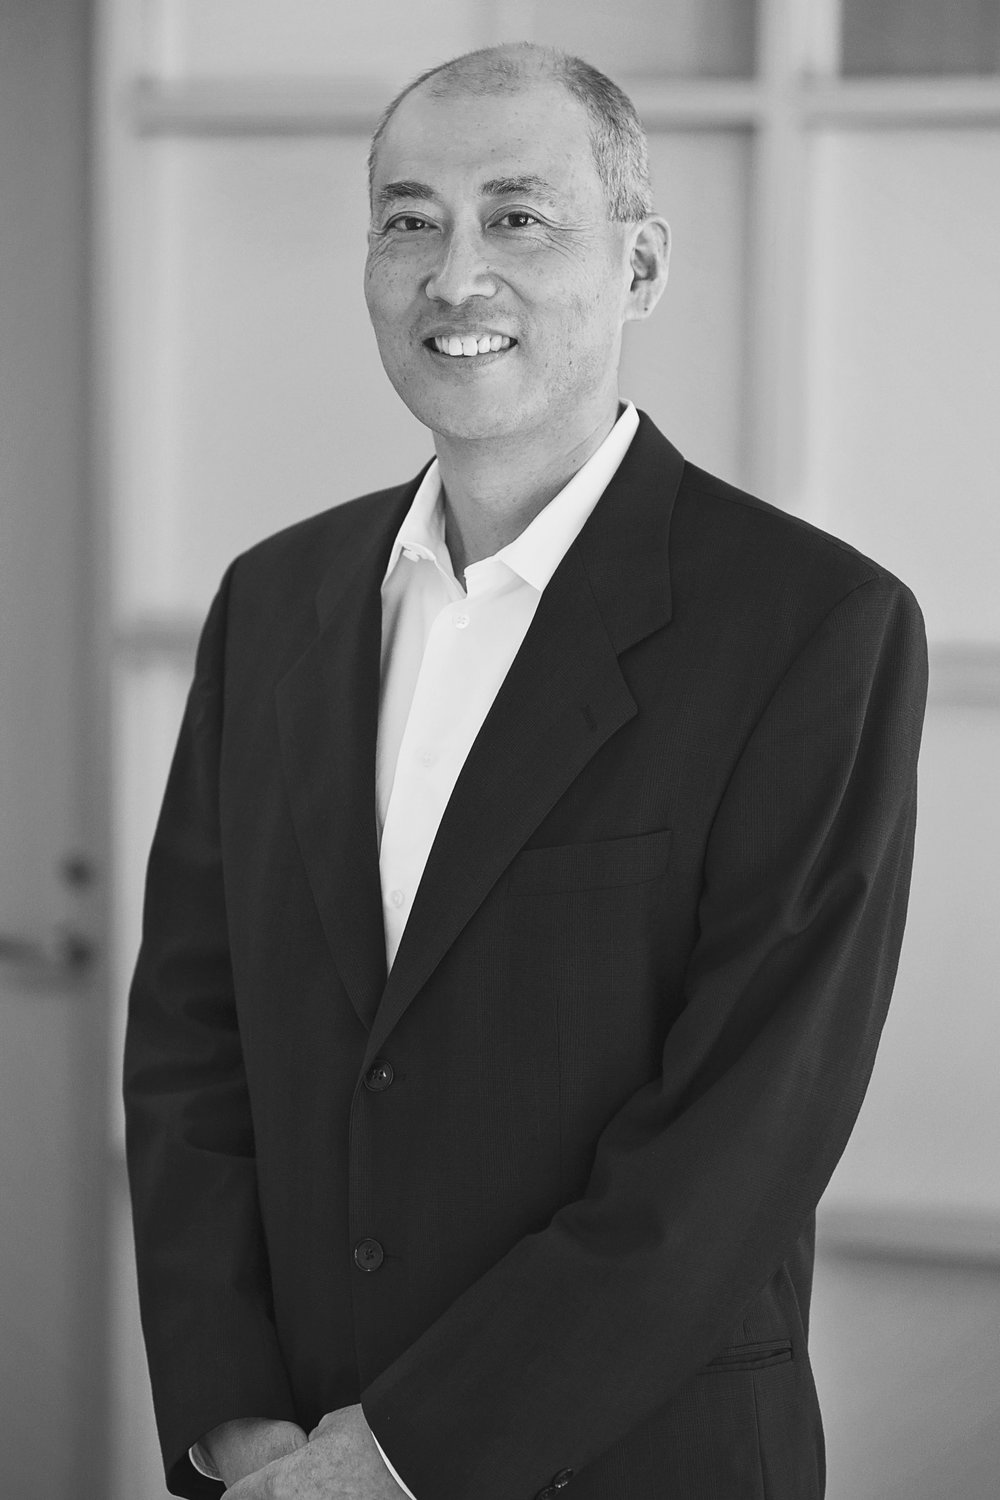 Bill Fang has more than 30 years of experience in engineering and engineering management, including ASIC design, board design, system design, and engineering team management. While at Raytheon E-Systems (1985-1996), Fang led a team of engineers in developing the first Fiber Channel-Based (ANSI X3T11) network, which was specifically designed to transfer digital video and data in real time. In 1996, Fang joined the STB group as the Director of Engineering and led the team into a new technology area of digital video. He developed Enseo's first MPEG decoder products and digital video/graphic overlay cards. Fang continues to lead the engineering team in developing digital video and graphic products for the professional broadcasting market. Fang earned his BSEE from the University of Texas at Austin and his MSEE from Southern Methodist University.